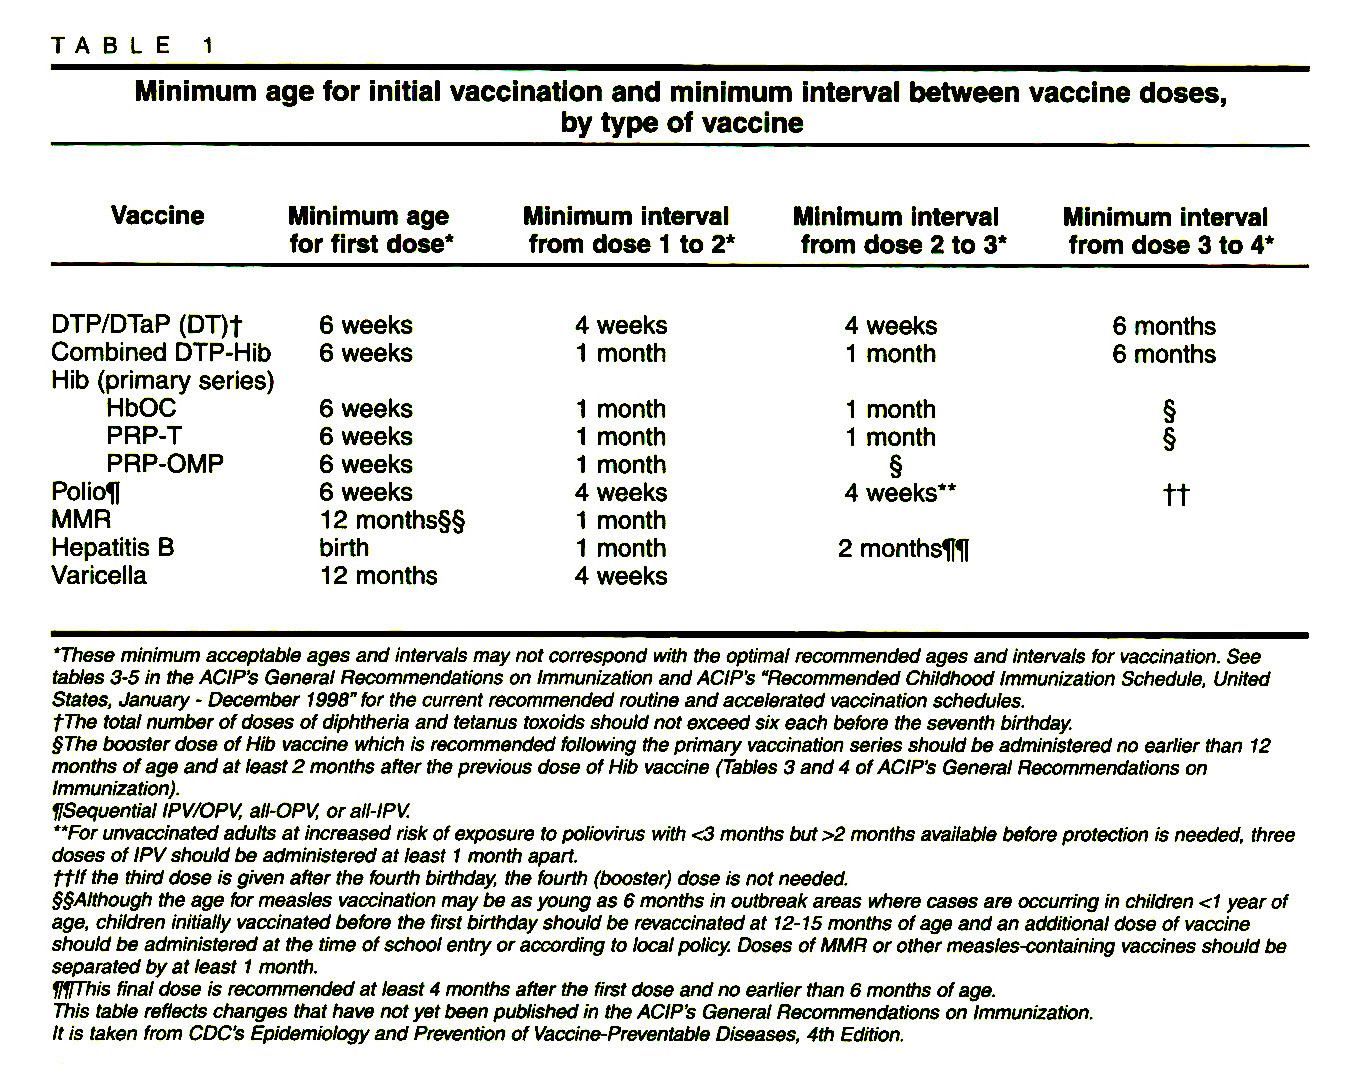 TABLE 1Minimum age for initial vaccination and minimum interval between vaccine doses, by type of vaccine